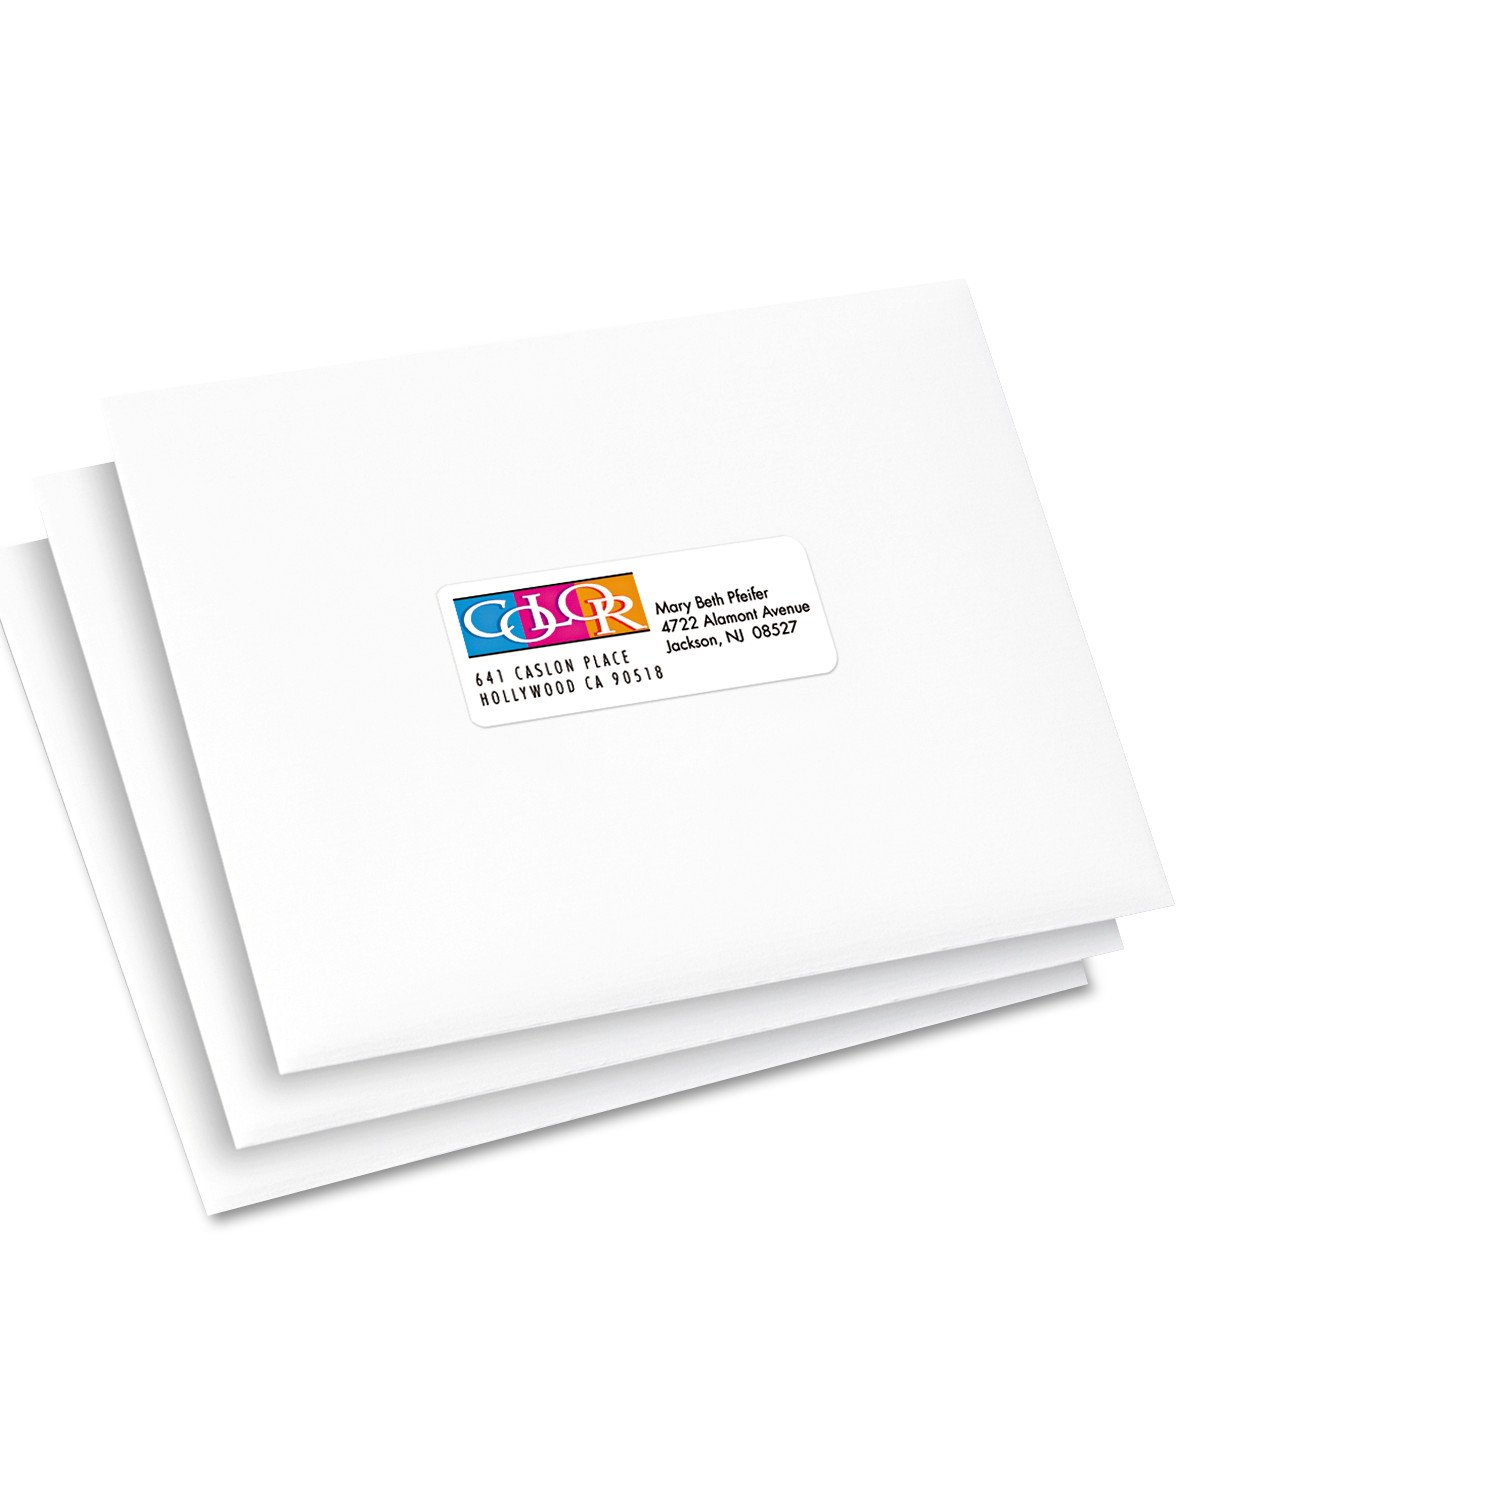 Avery Address Labels For Ink Jet Printers 8250 (20 Sheets) by Avery (Image #2)